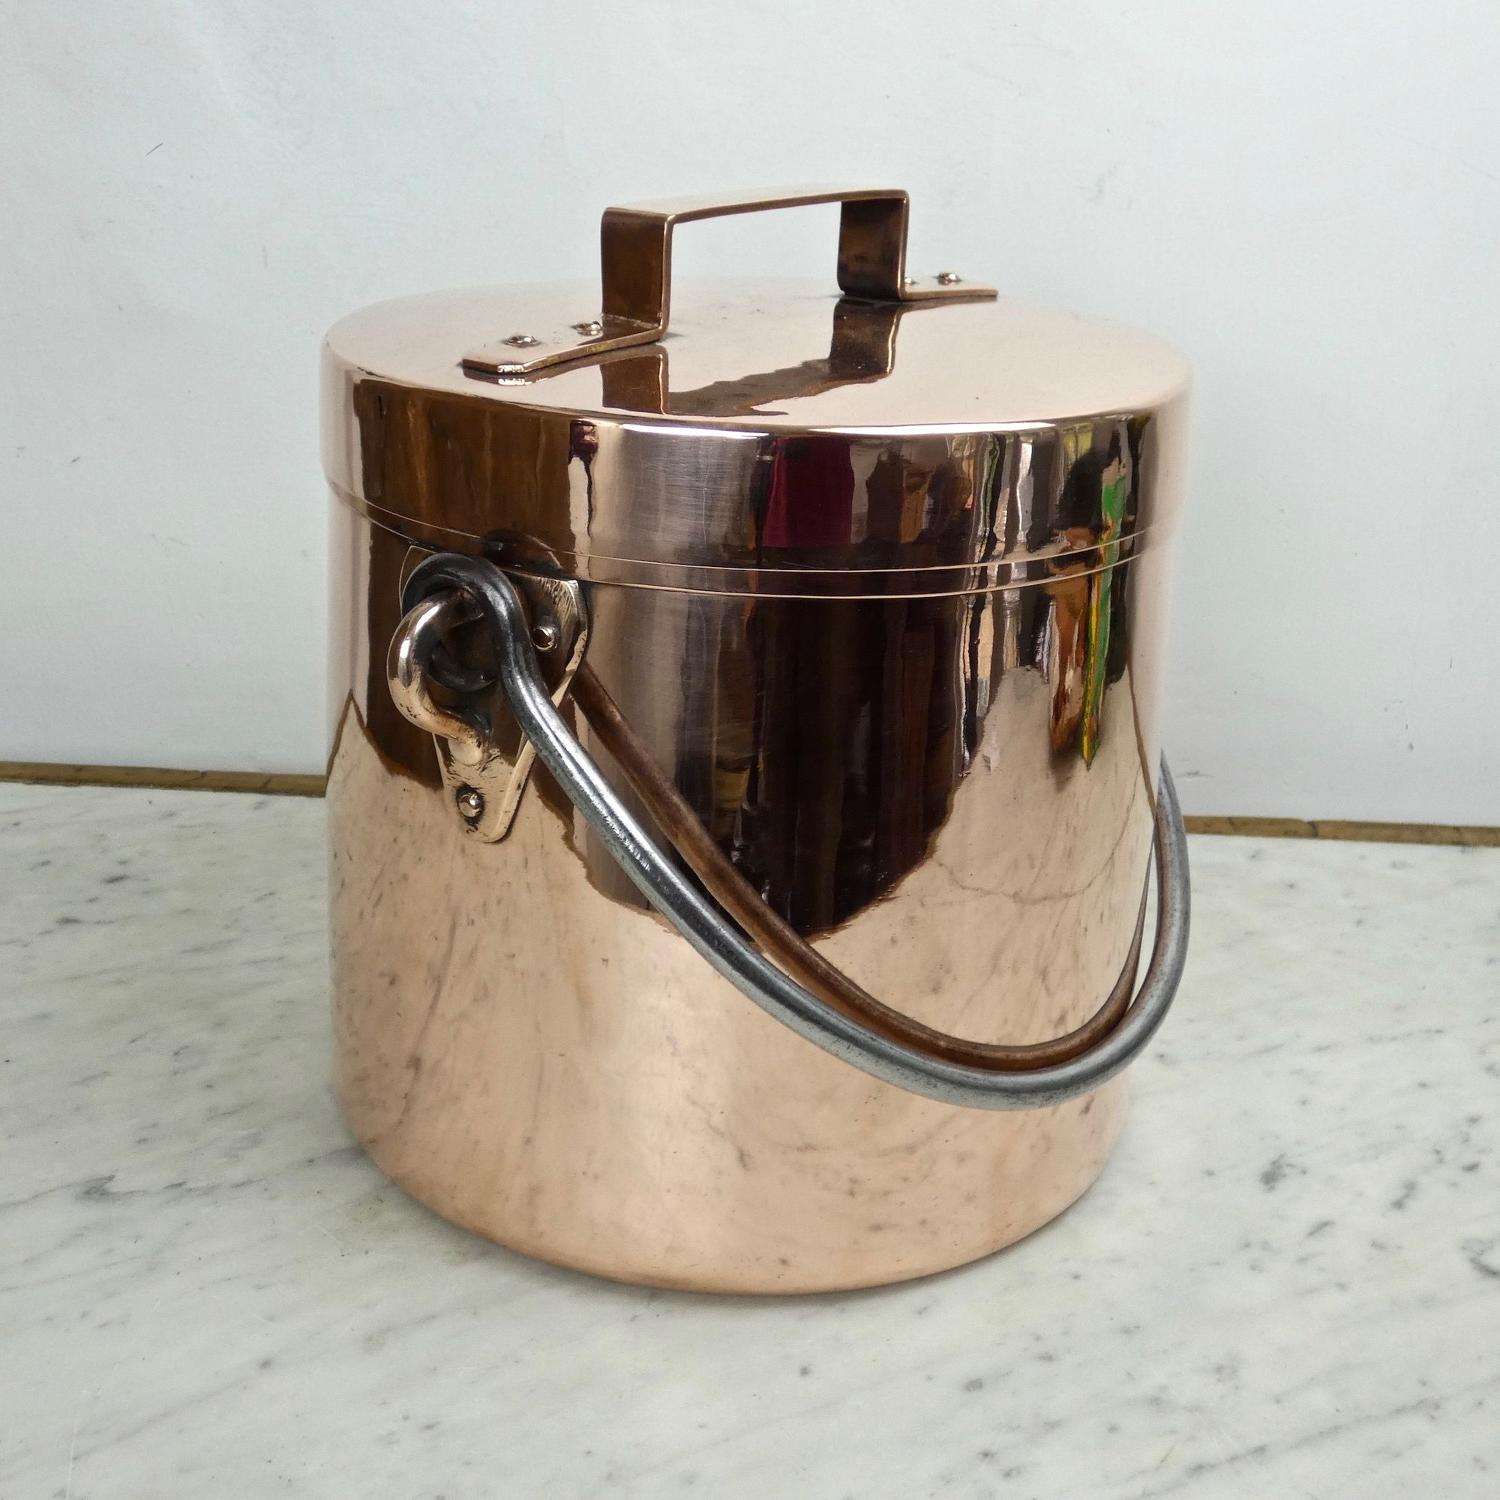 Large, French hanging cookpot